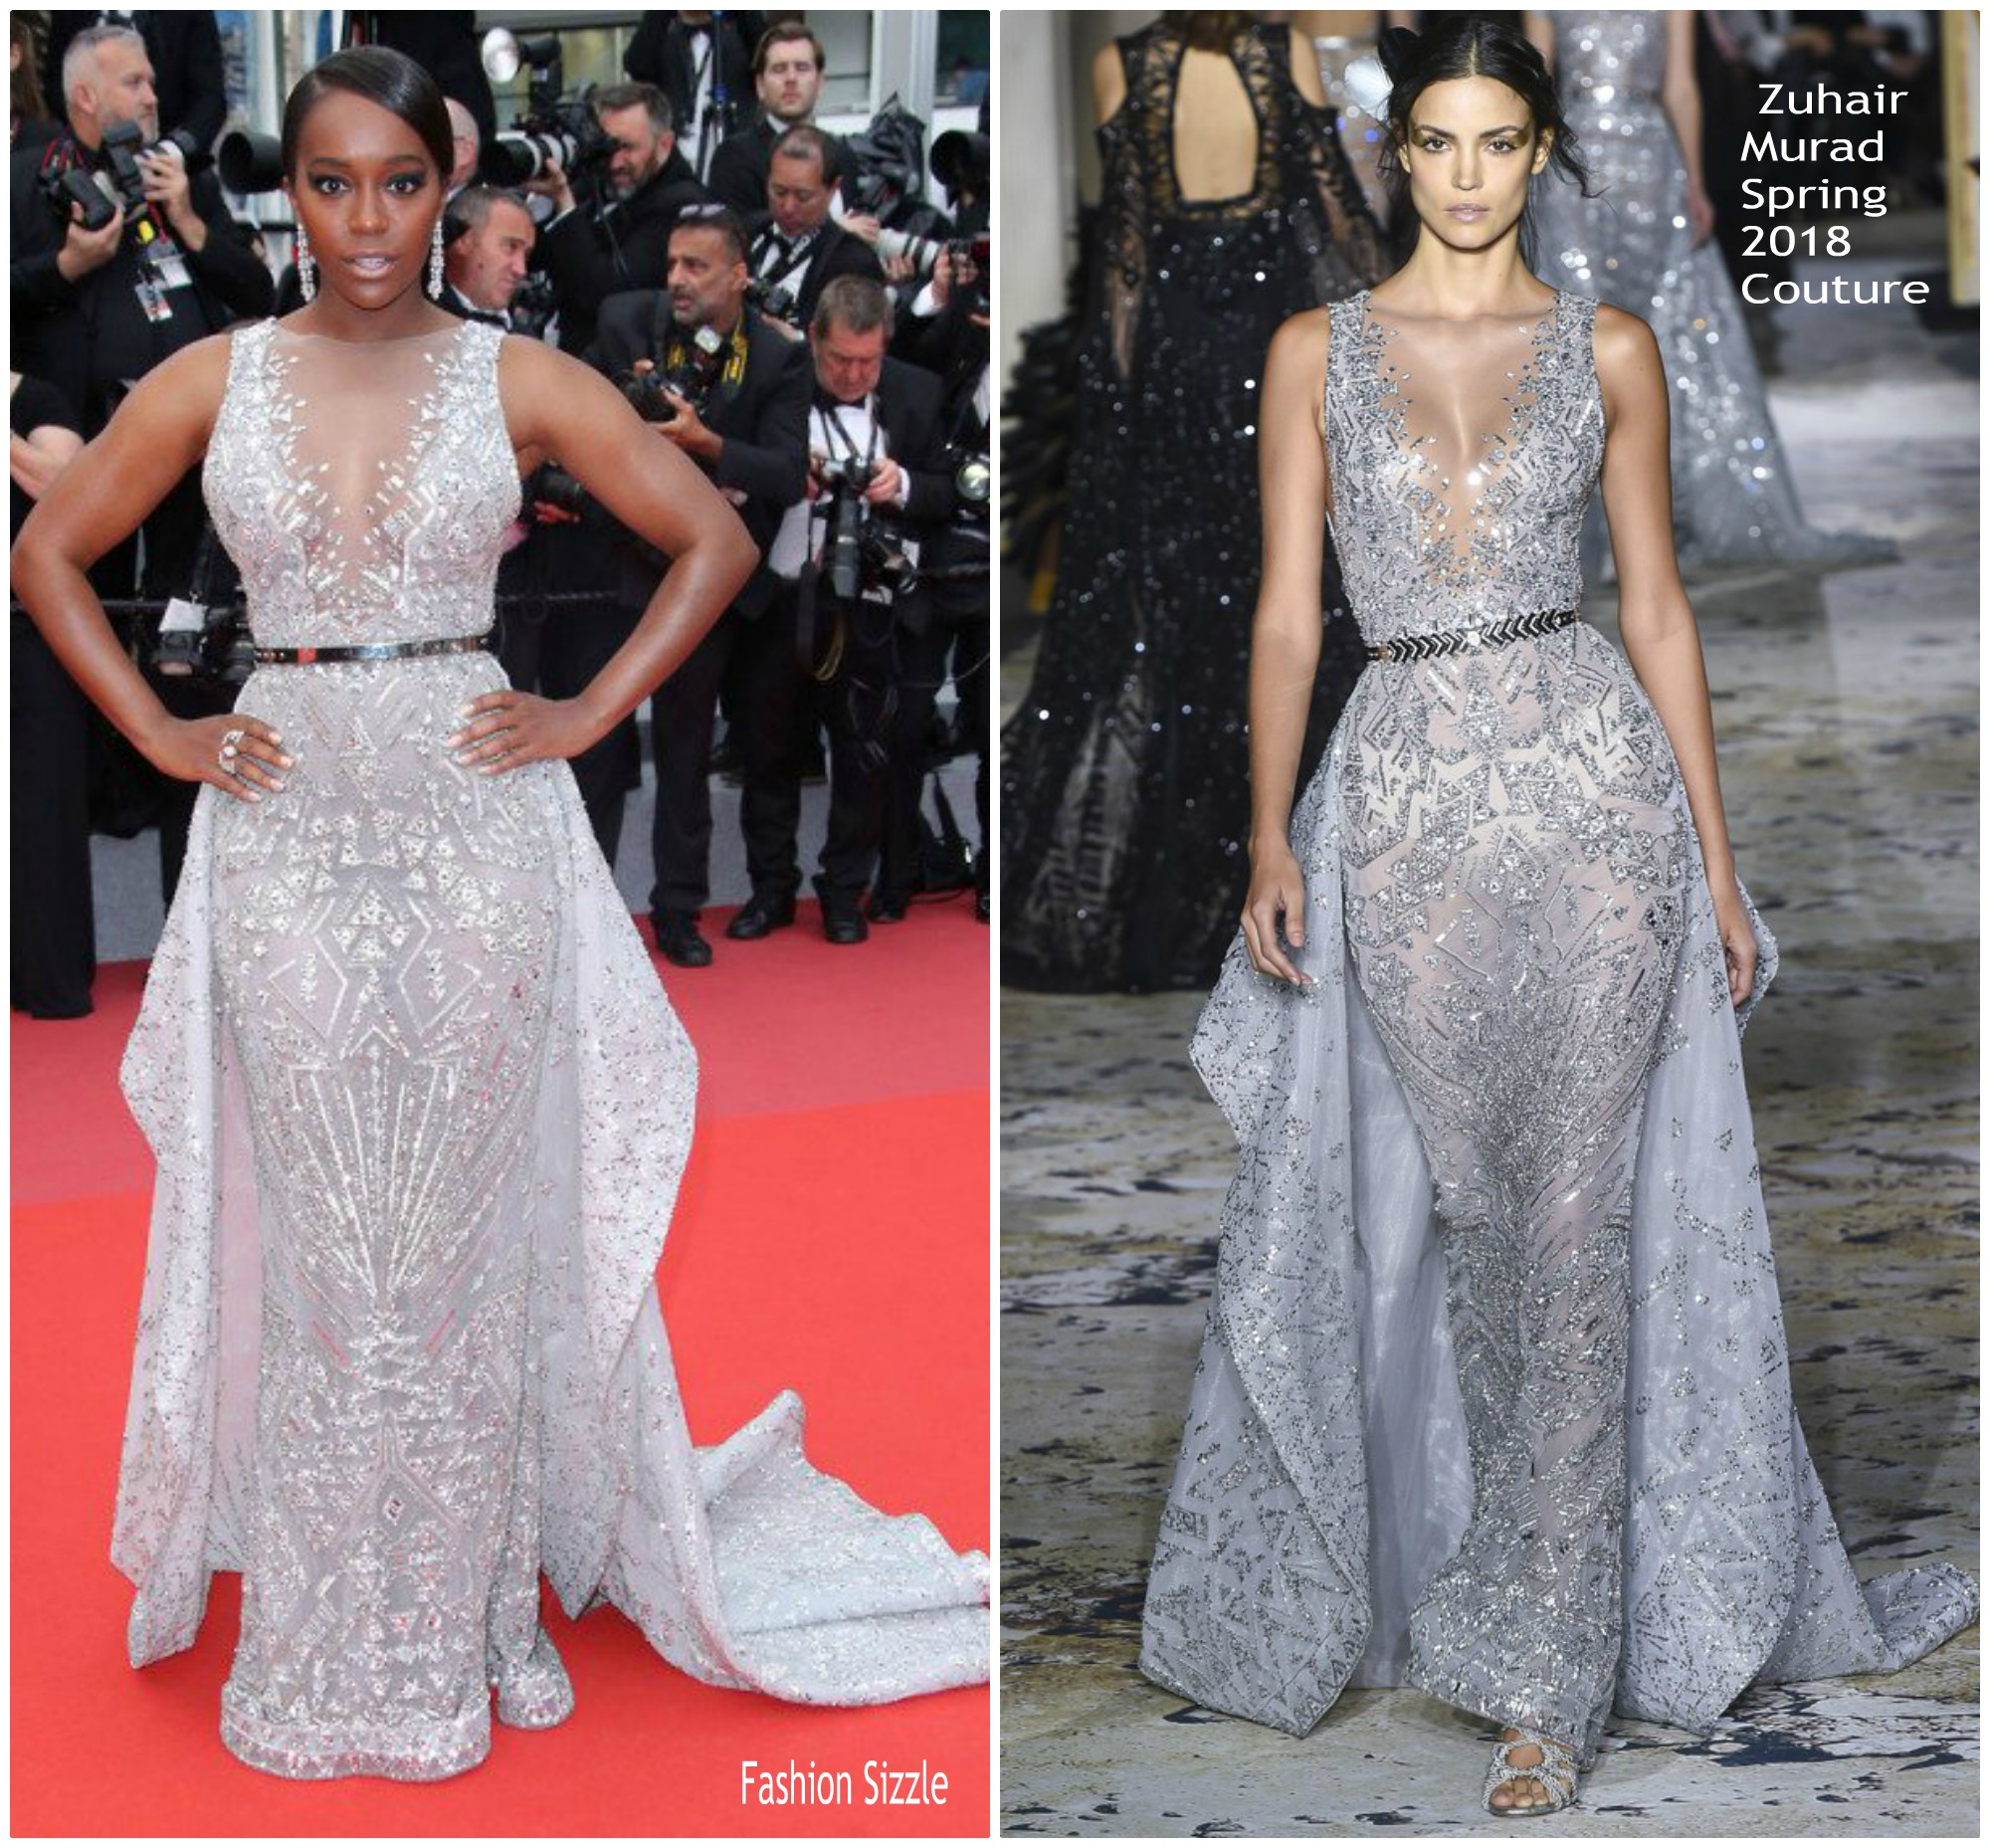 aja- naomi-king-in-zuhair-murad-couture-sorry-angel-plaire-aimer-et-courir-vite-cannes-film-festival-premiere